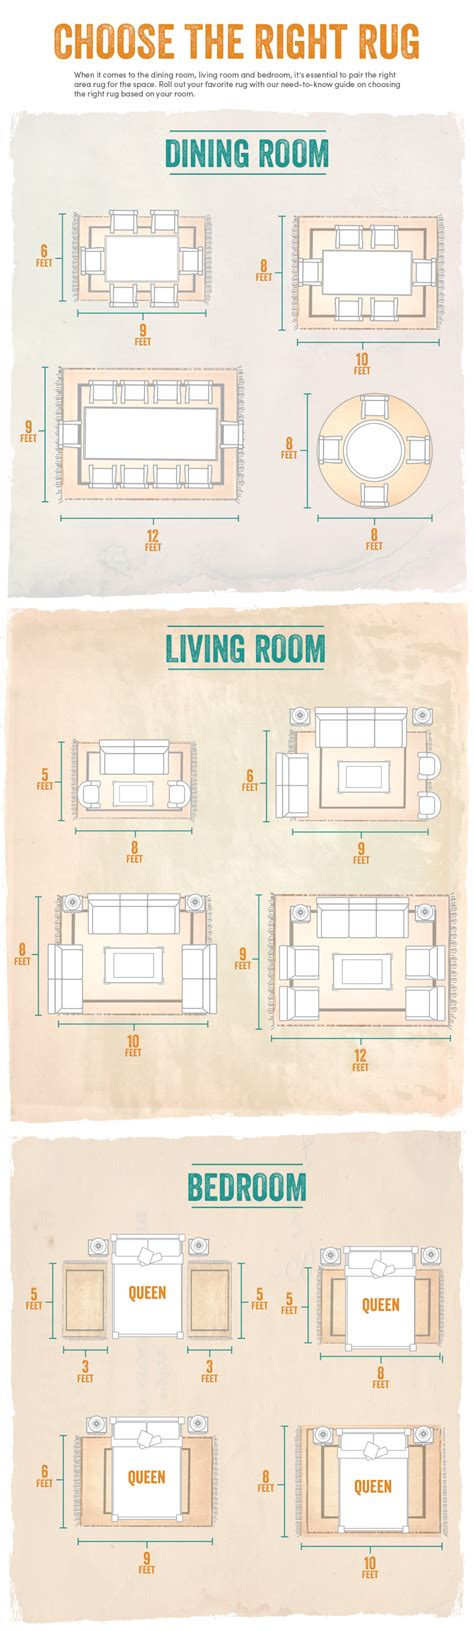 how to select the right carpet for living room choose the right rug for your space discover